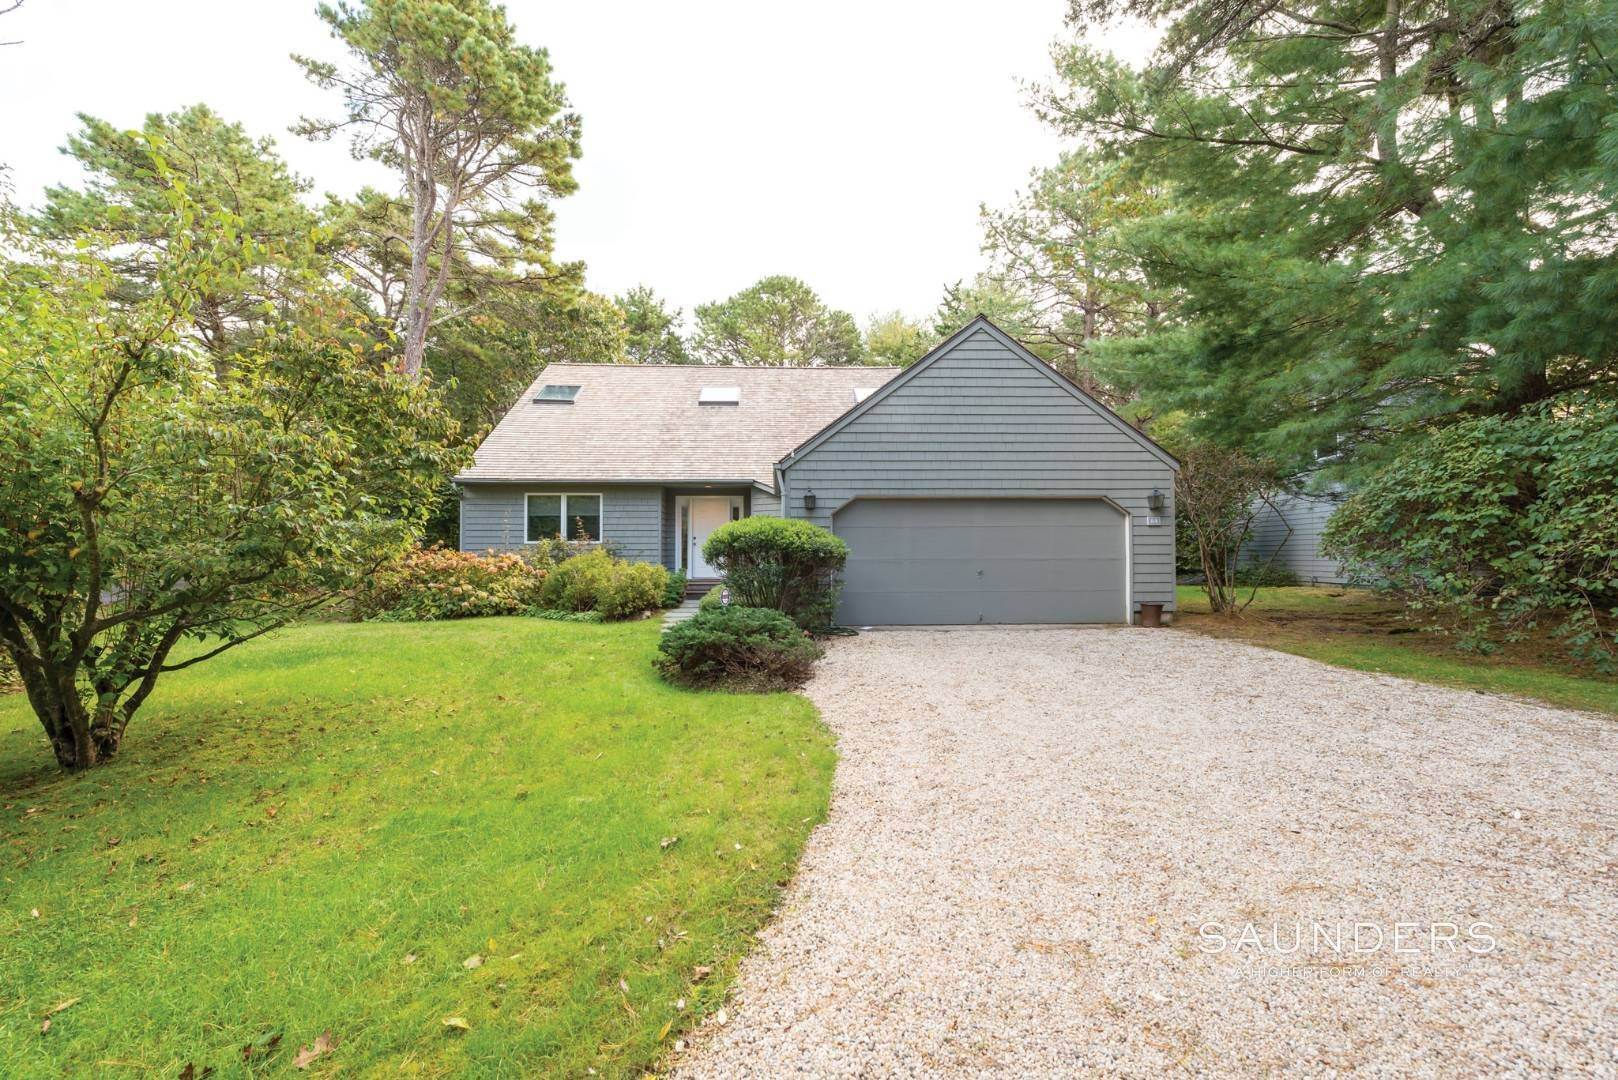 Condominiums for Sale at Georgica Estates 64 Huckleberry Lane, East Hampton, East Hampton Town, NY 11937